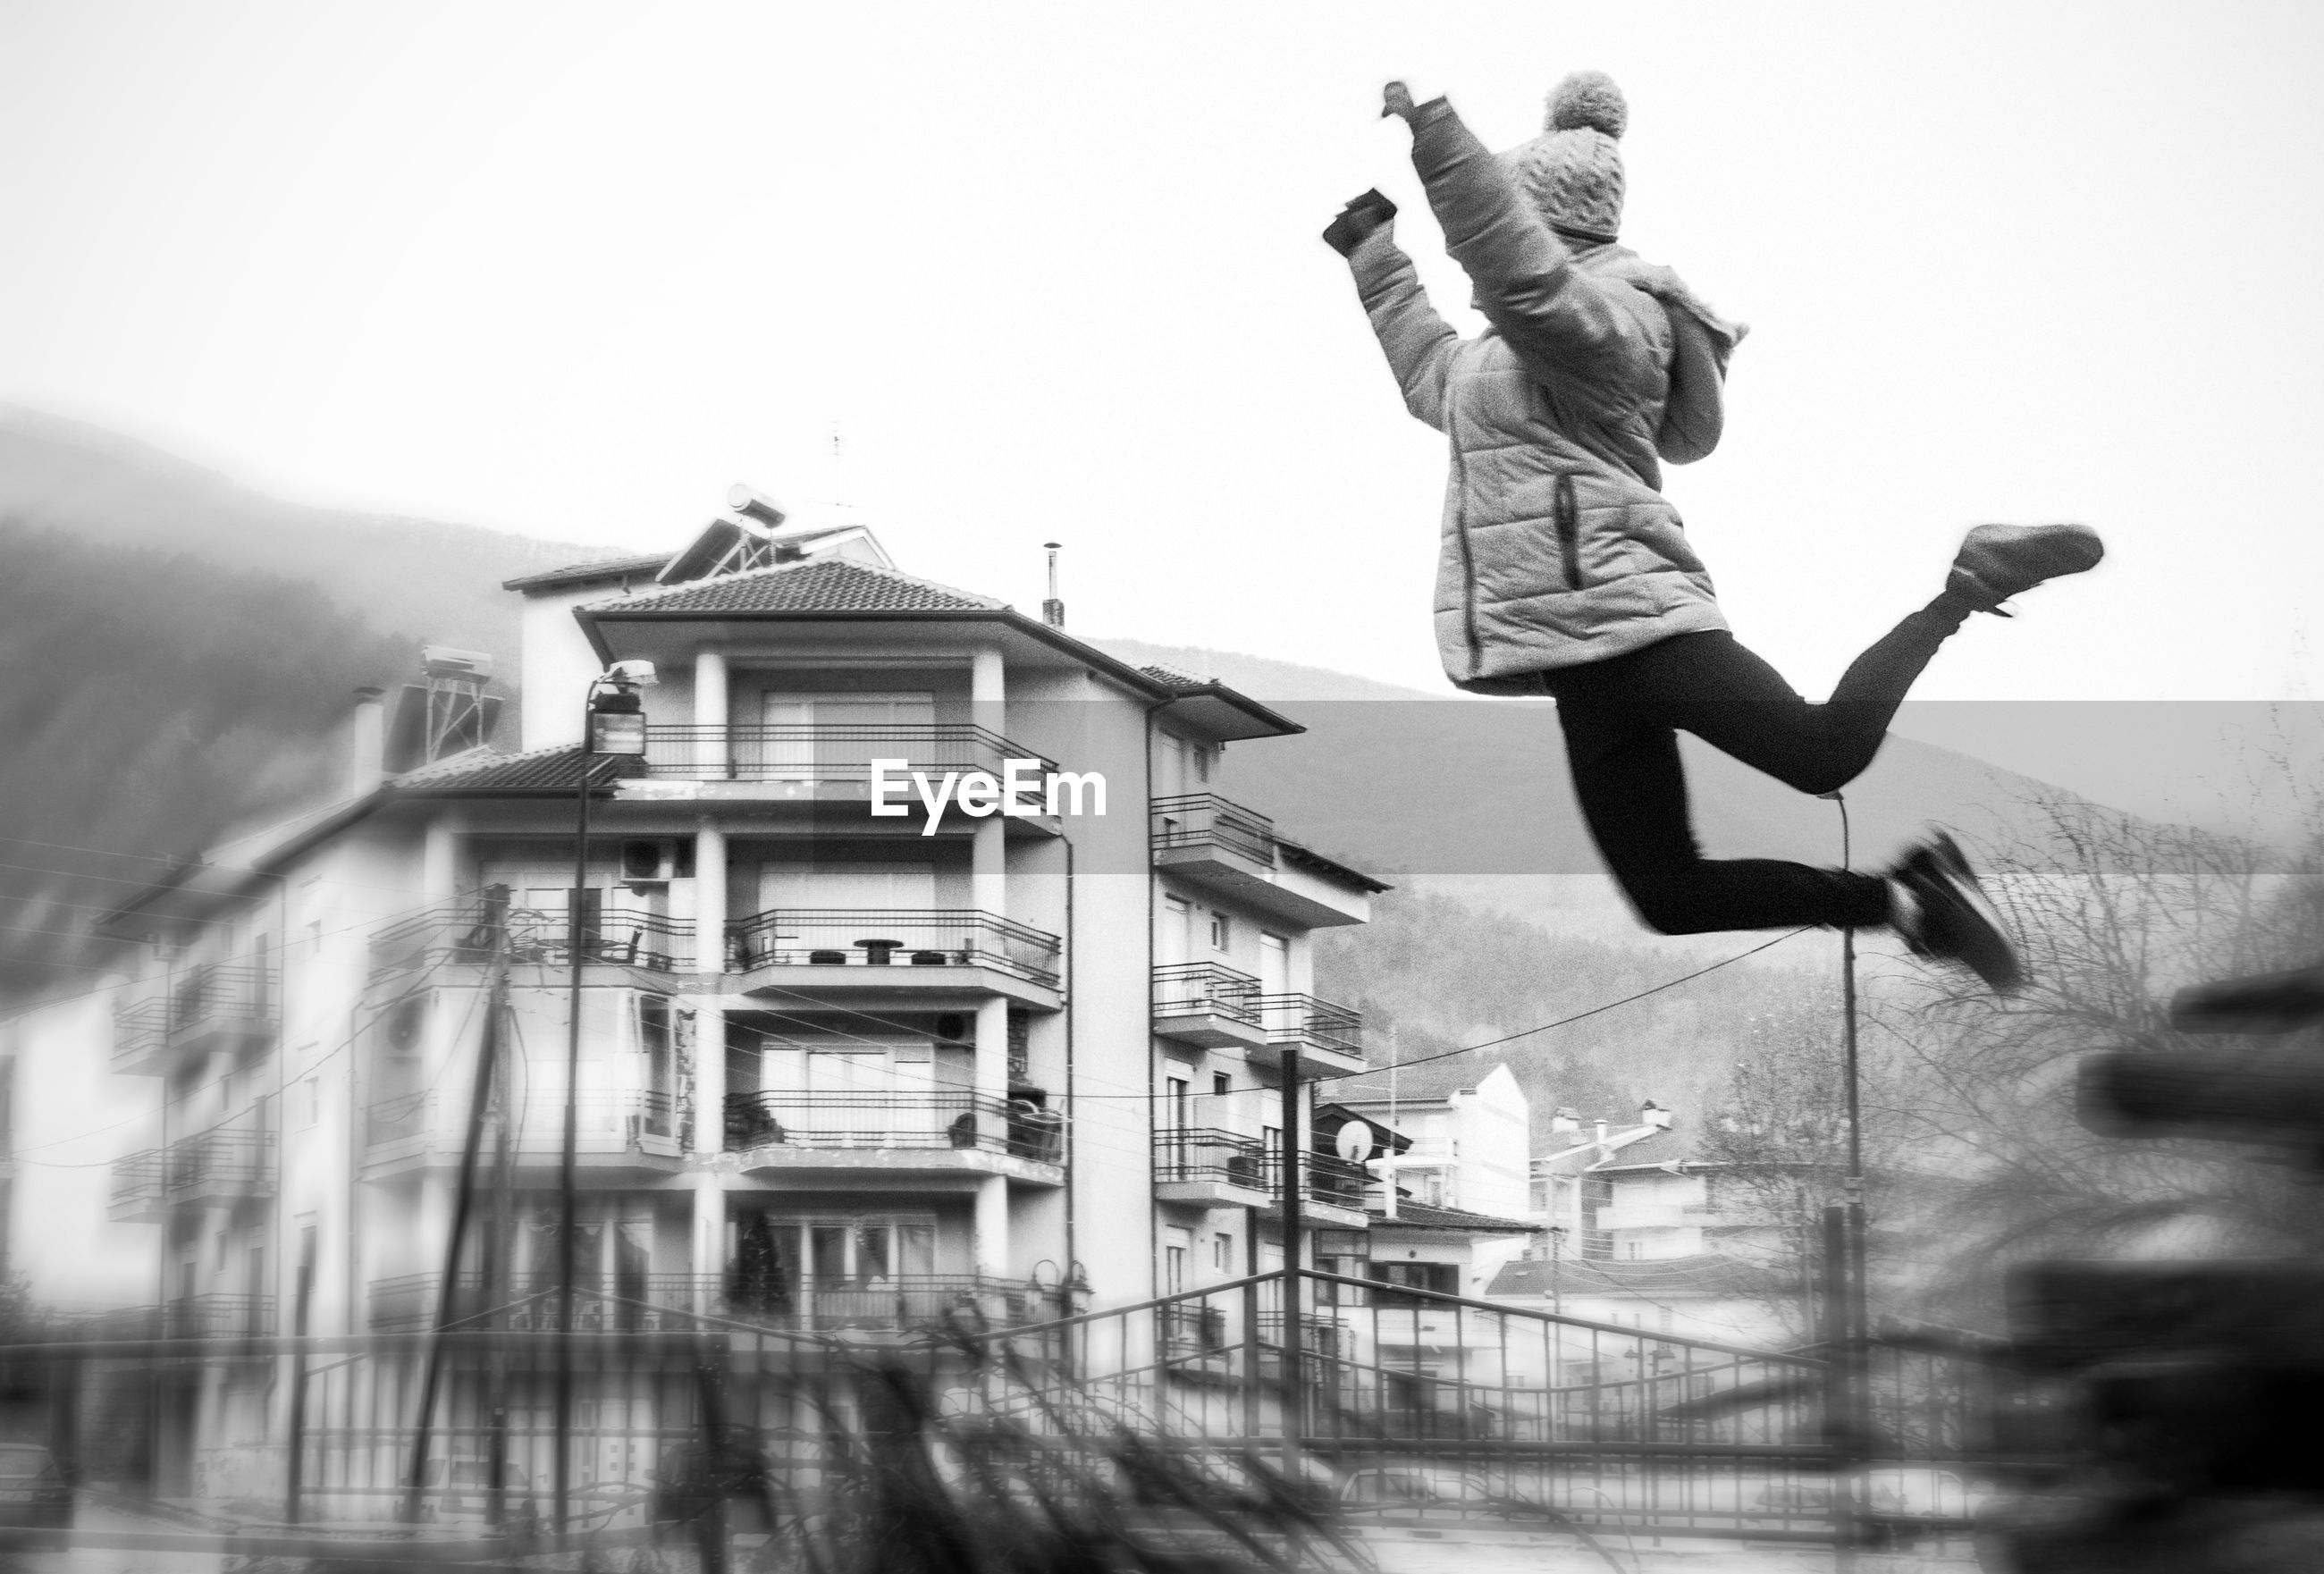 Woman jumping against buildings in city